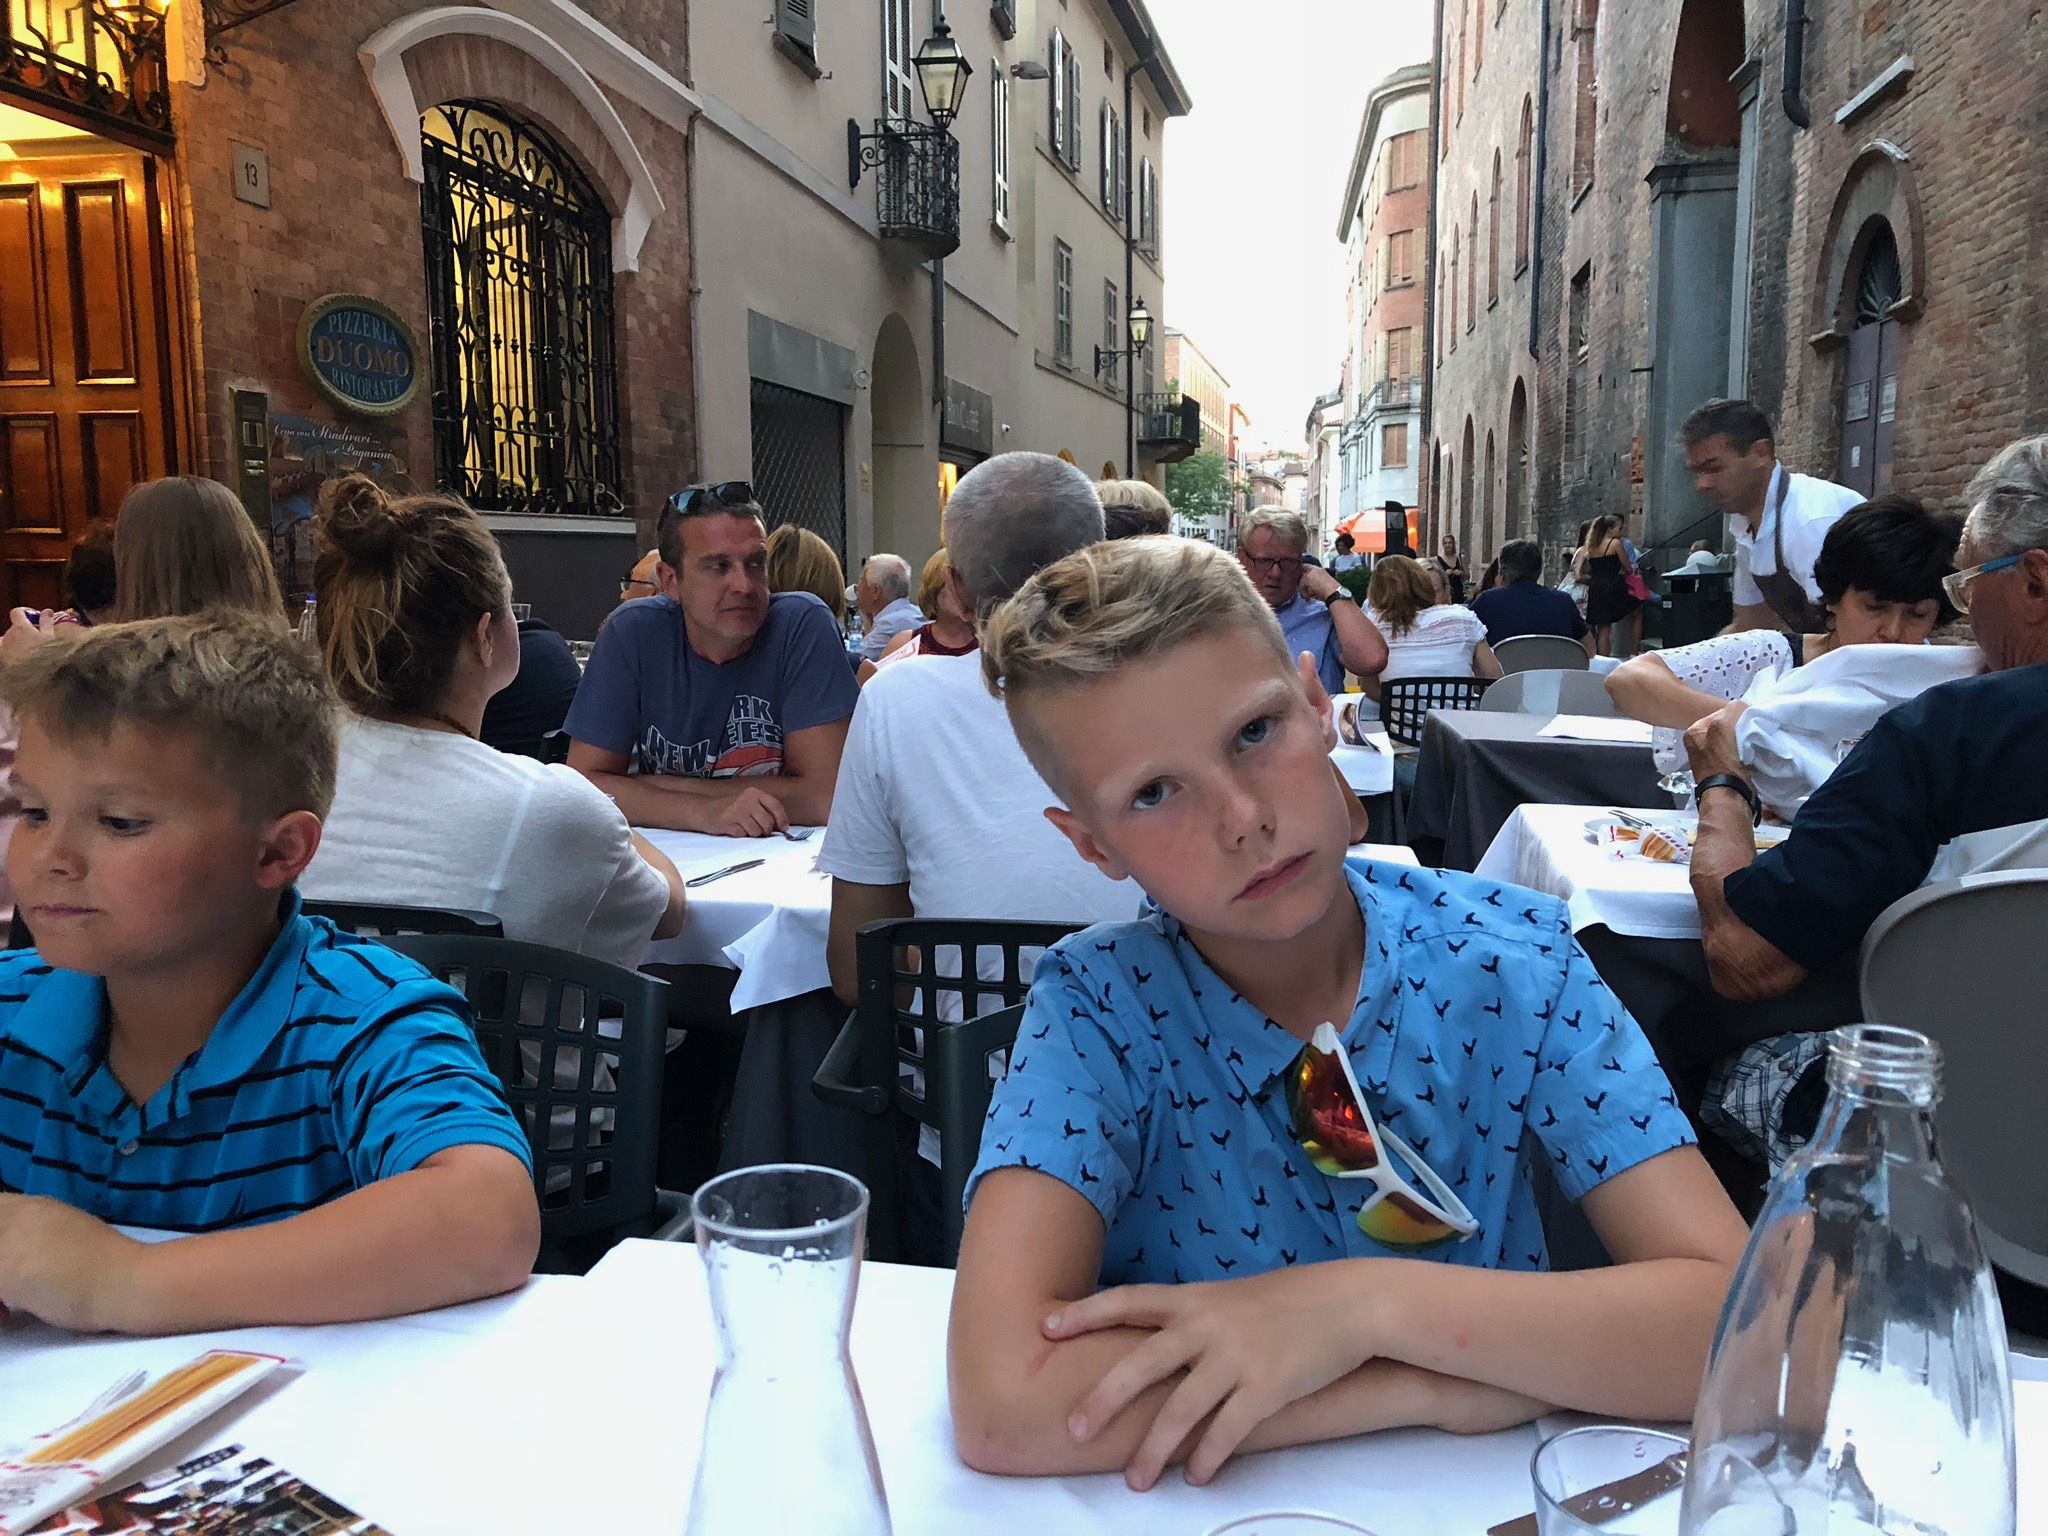 We felt like locals in this bourgeois town - although Jack noted here he was tired of eating out. 😂